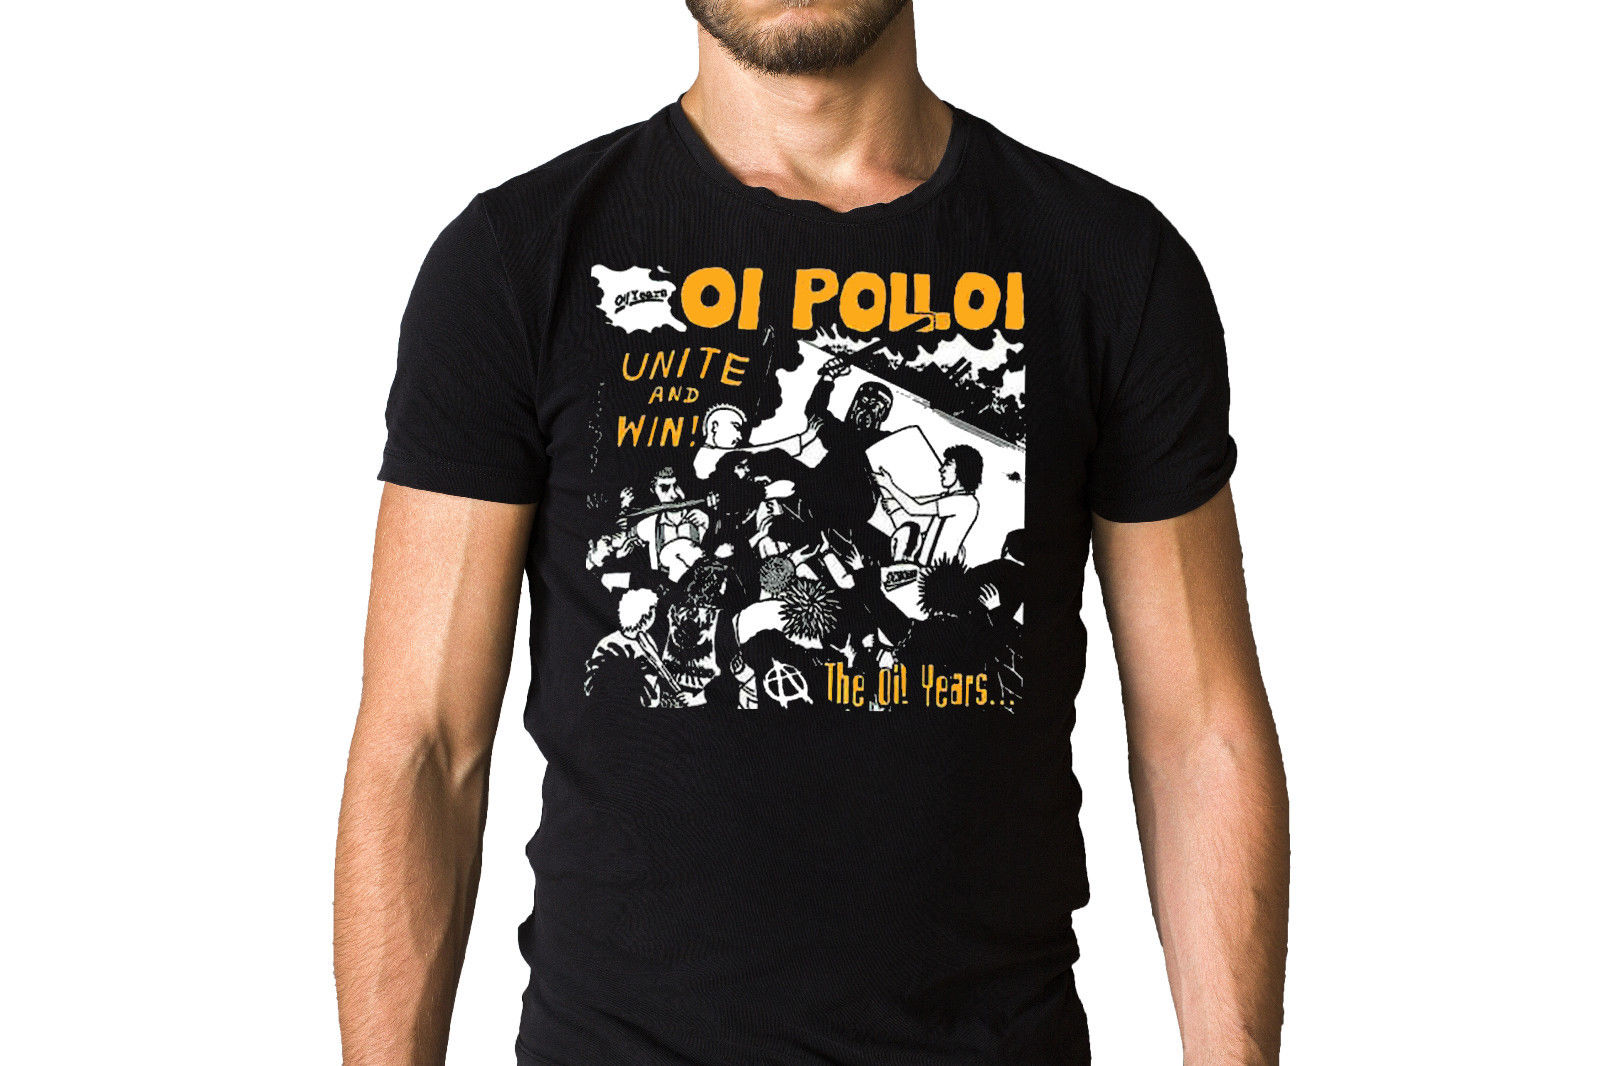 Oi Polloi Unite and Win 1987 Album Cover Inspired Black T-Shirt Print T Shirt Mens Short Sleeve Hot Top Tee Normal